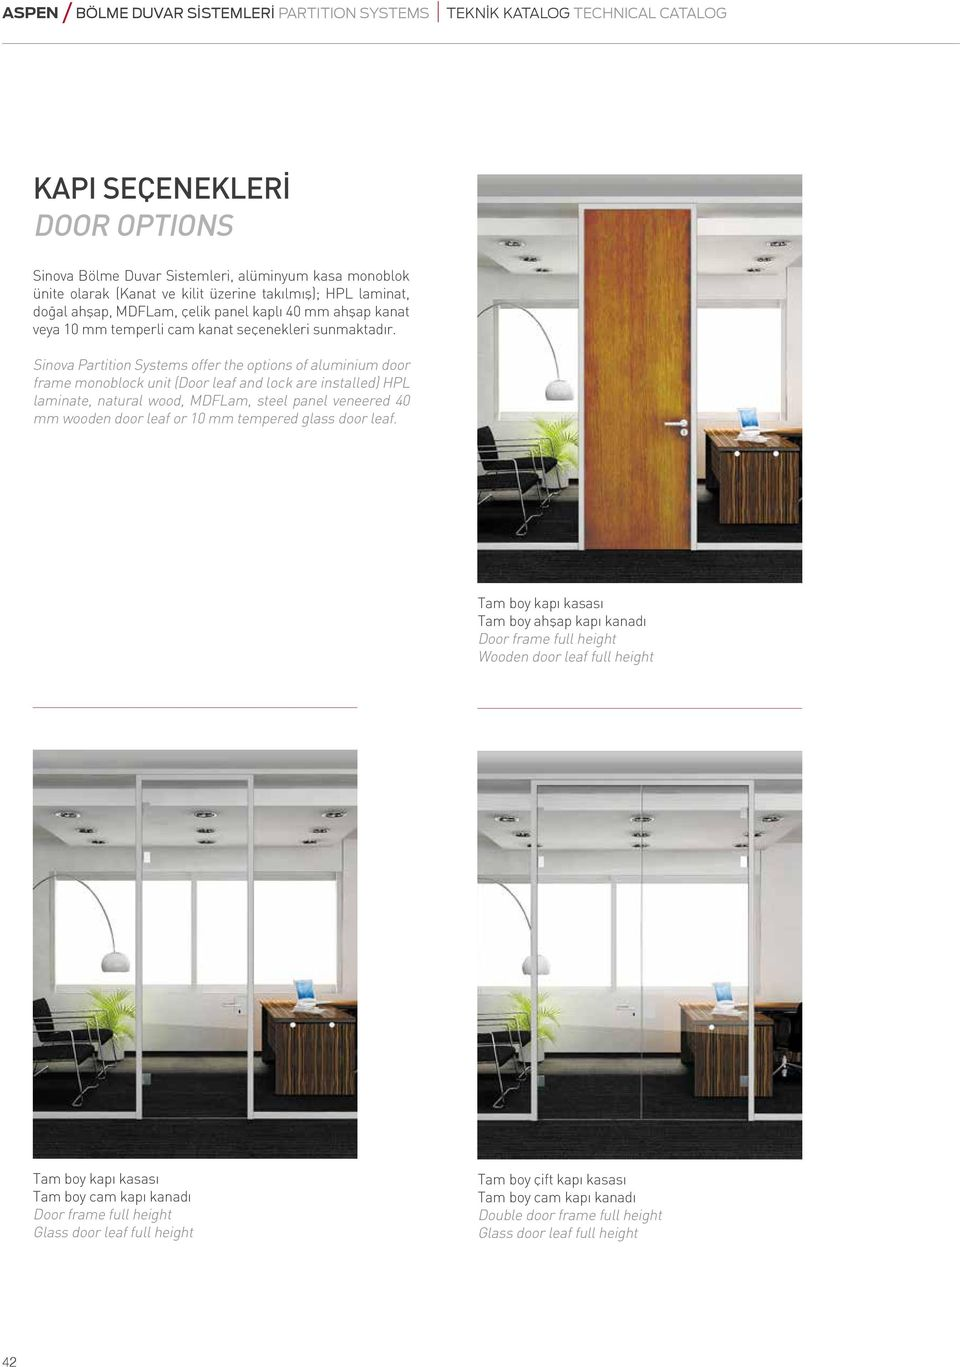 Sinova Partition Systems offer the options of aluminium door frame monoblock unit (Door leaf and lock are installed) HPL laminate, natural wood, MDFLam, steel panel veneered 40 mm wooden door leaf or